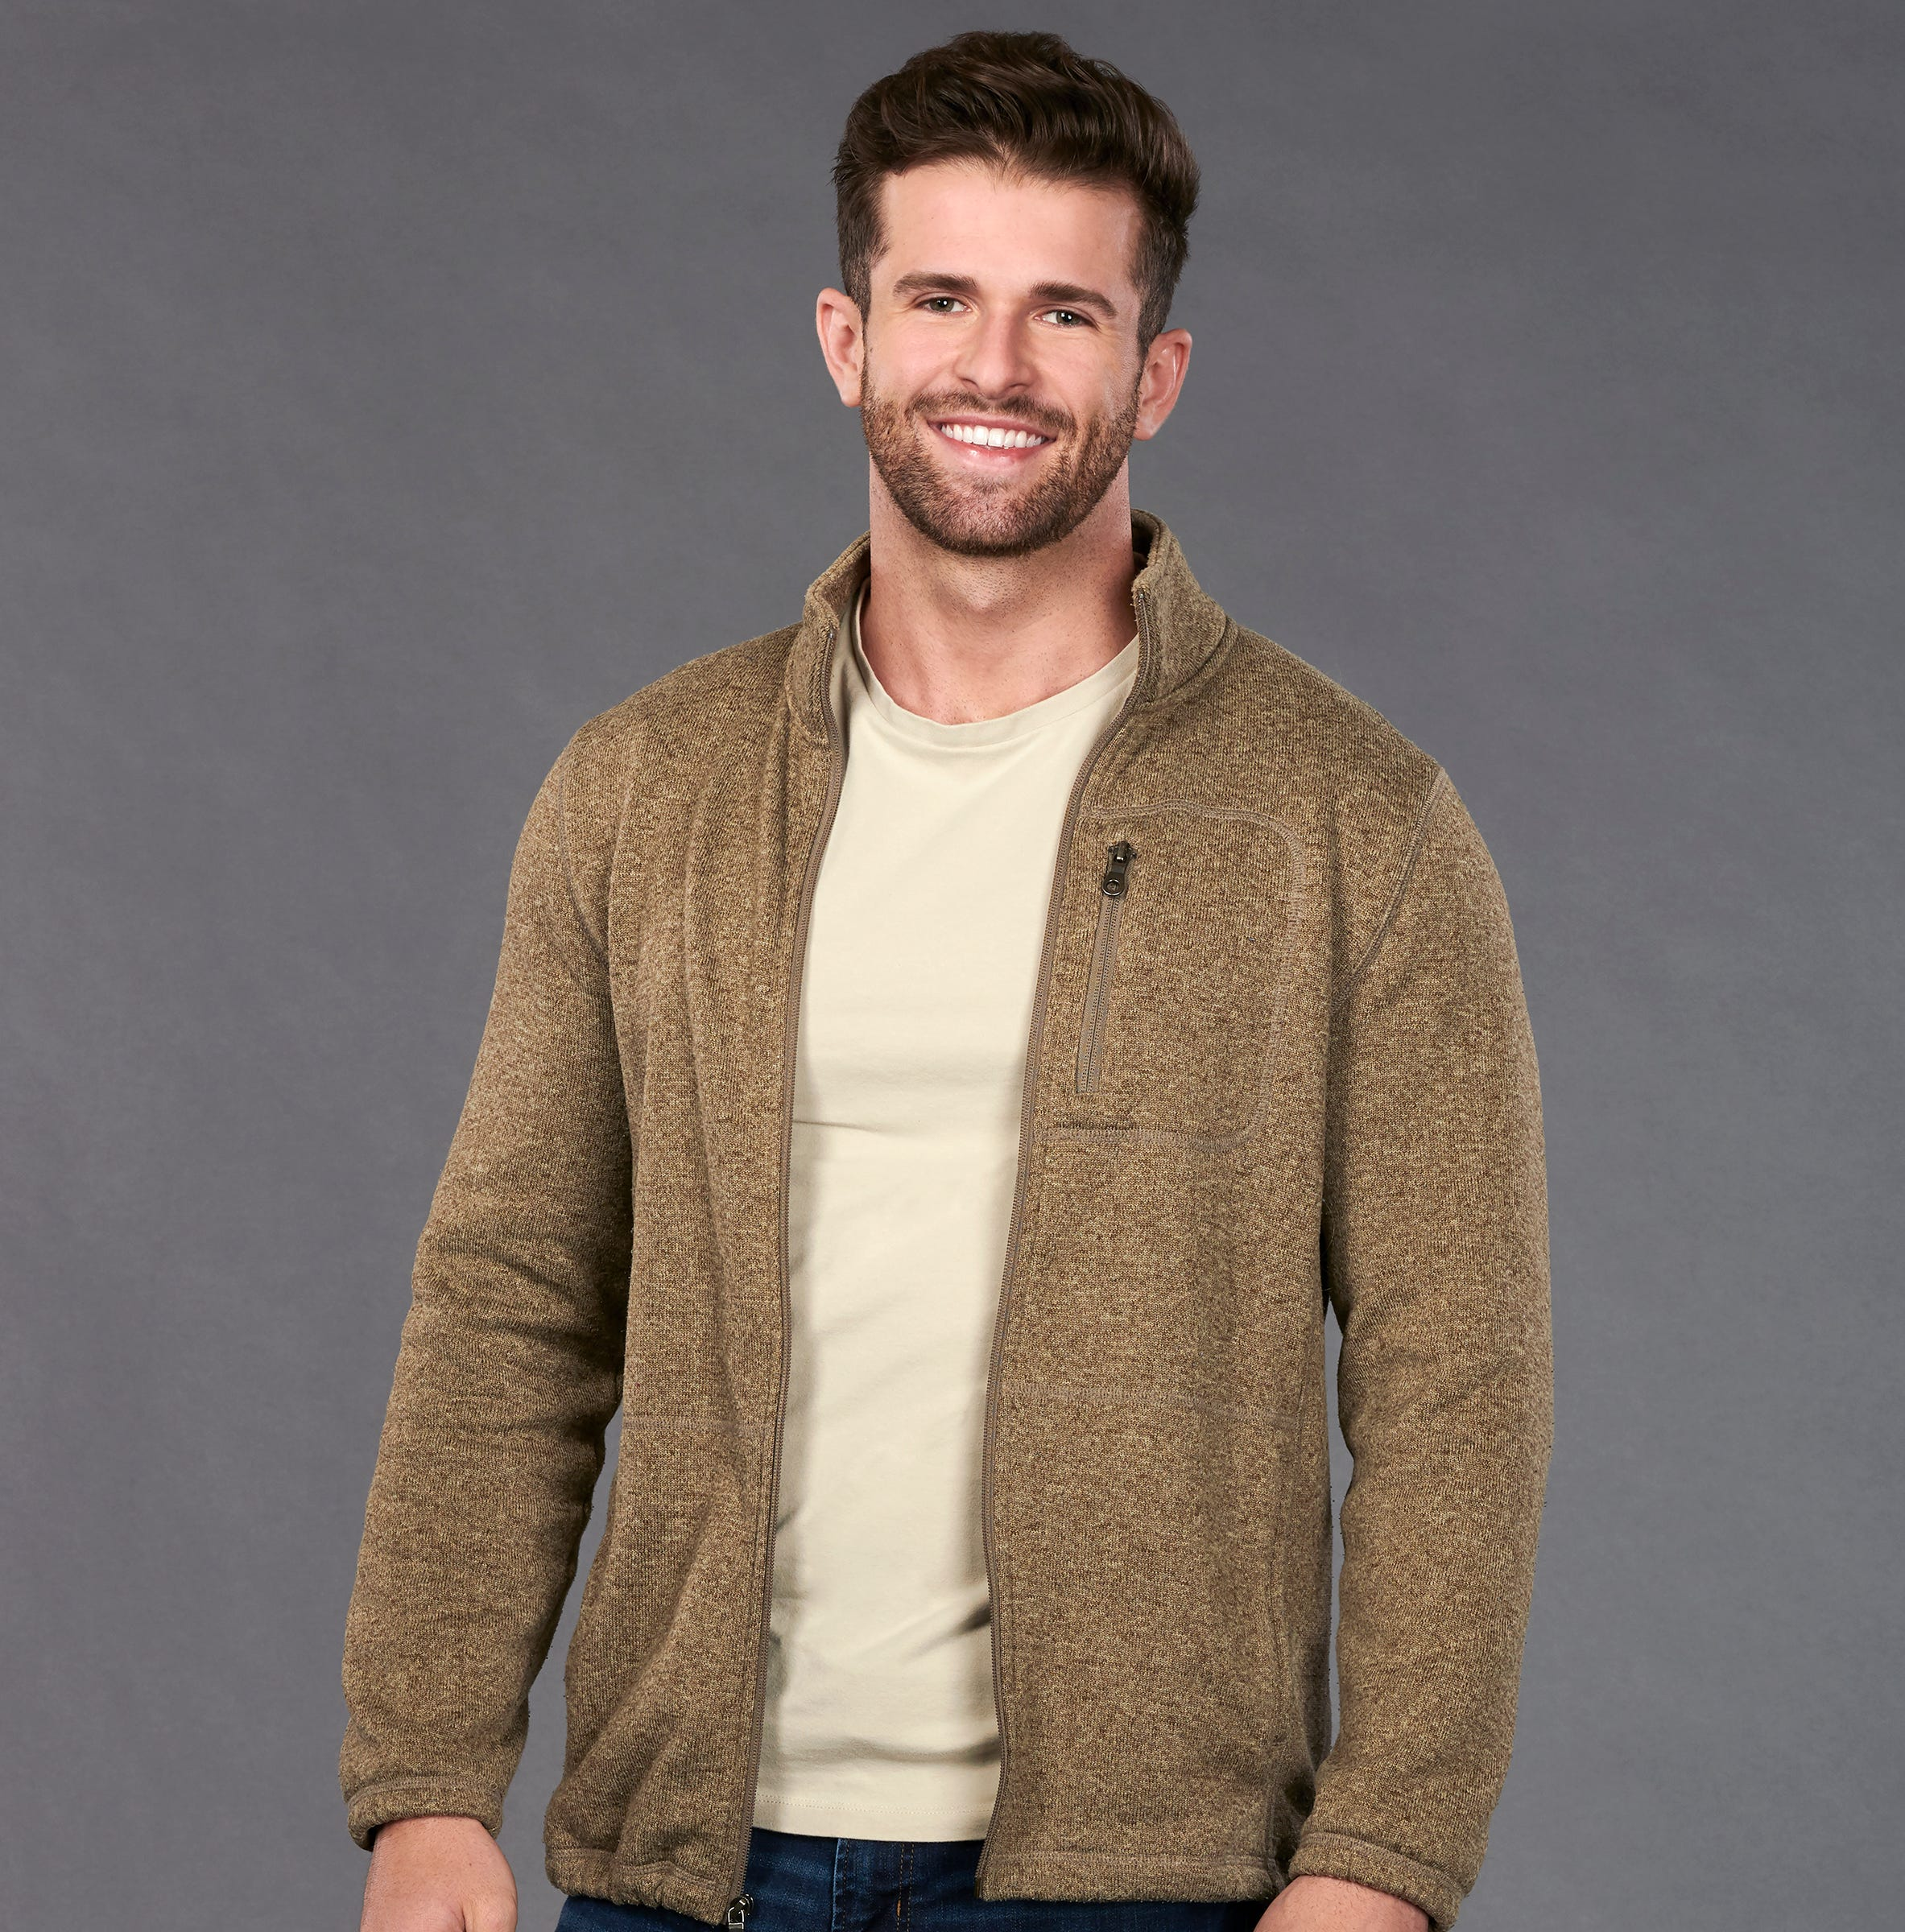 Nashville songwriter to test his love on new season of 'The Bachelorette'